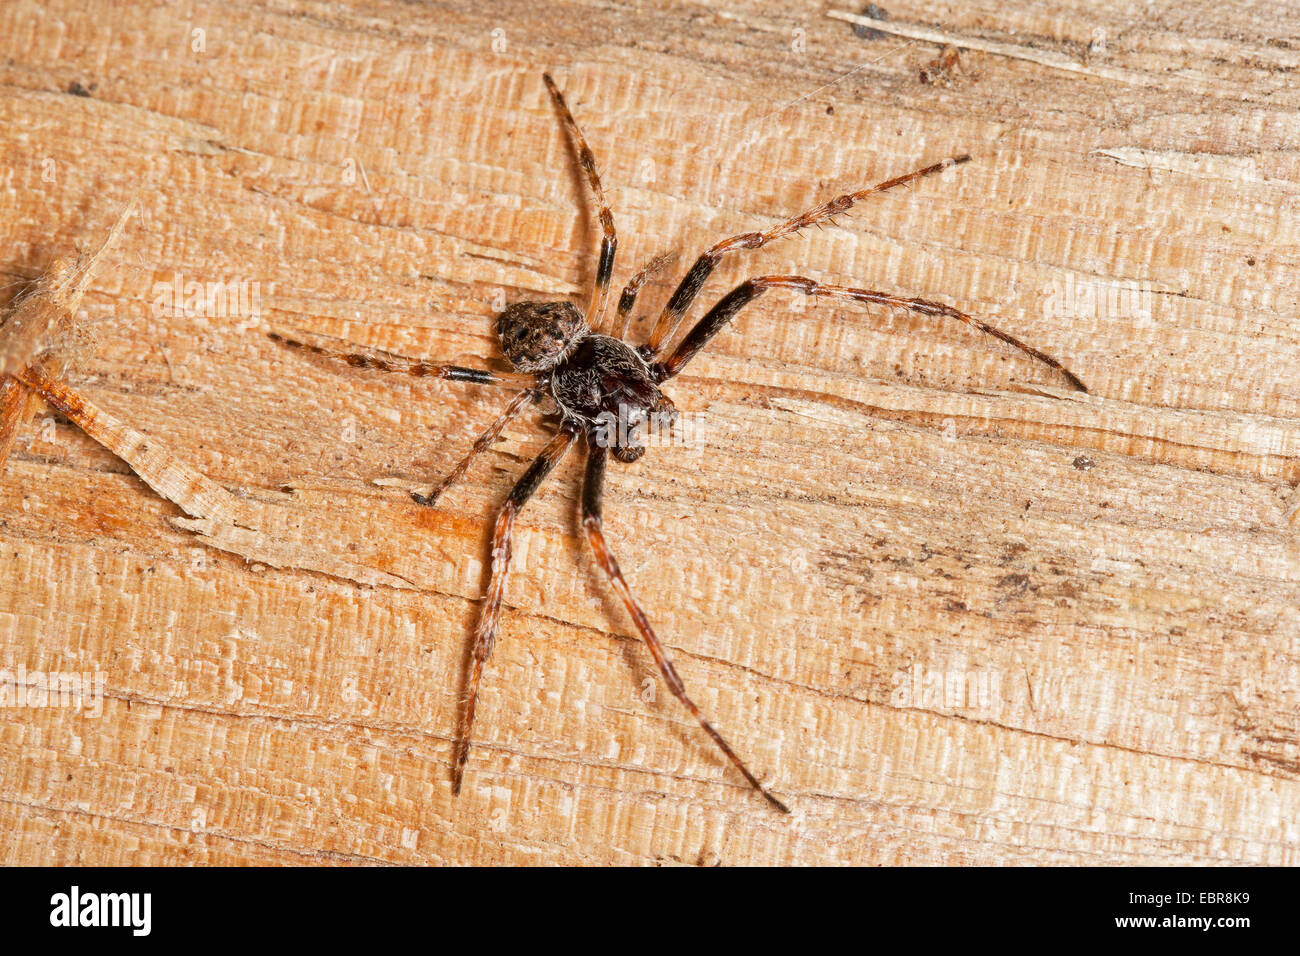 Crevice spider, Walnut Orb-Weaver Spider, walnut orb weaver spider, Walnut Orb Weaver (Araneus umbraticus, Nuctenea - Stock Image